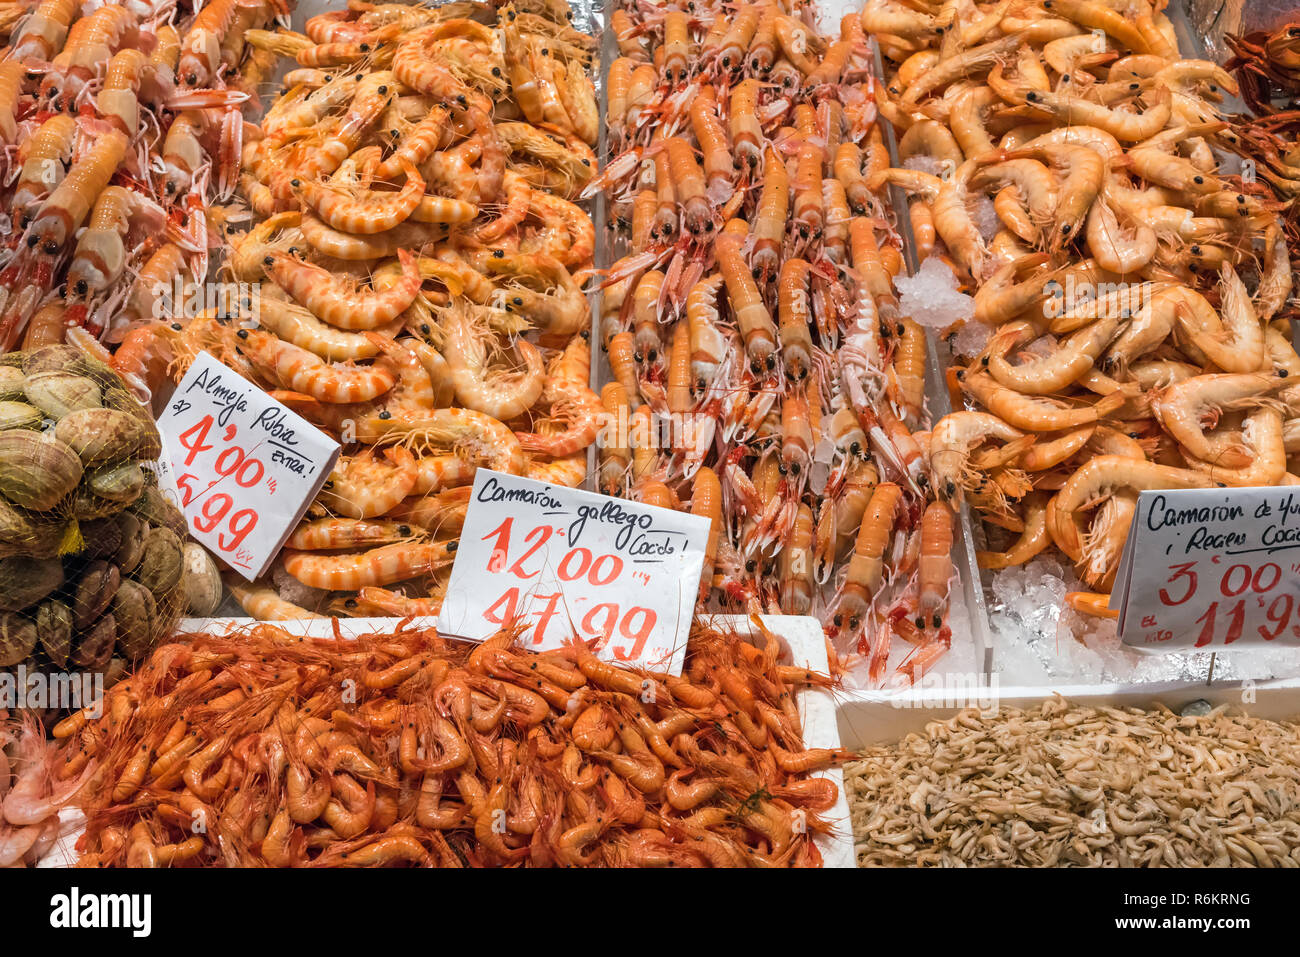 various shrimp species on a market in madrid,spain - Stock Image